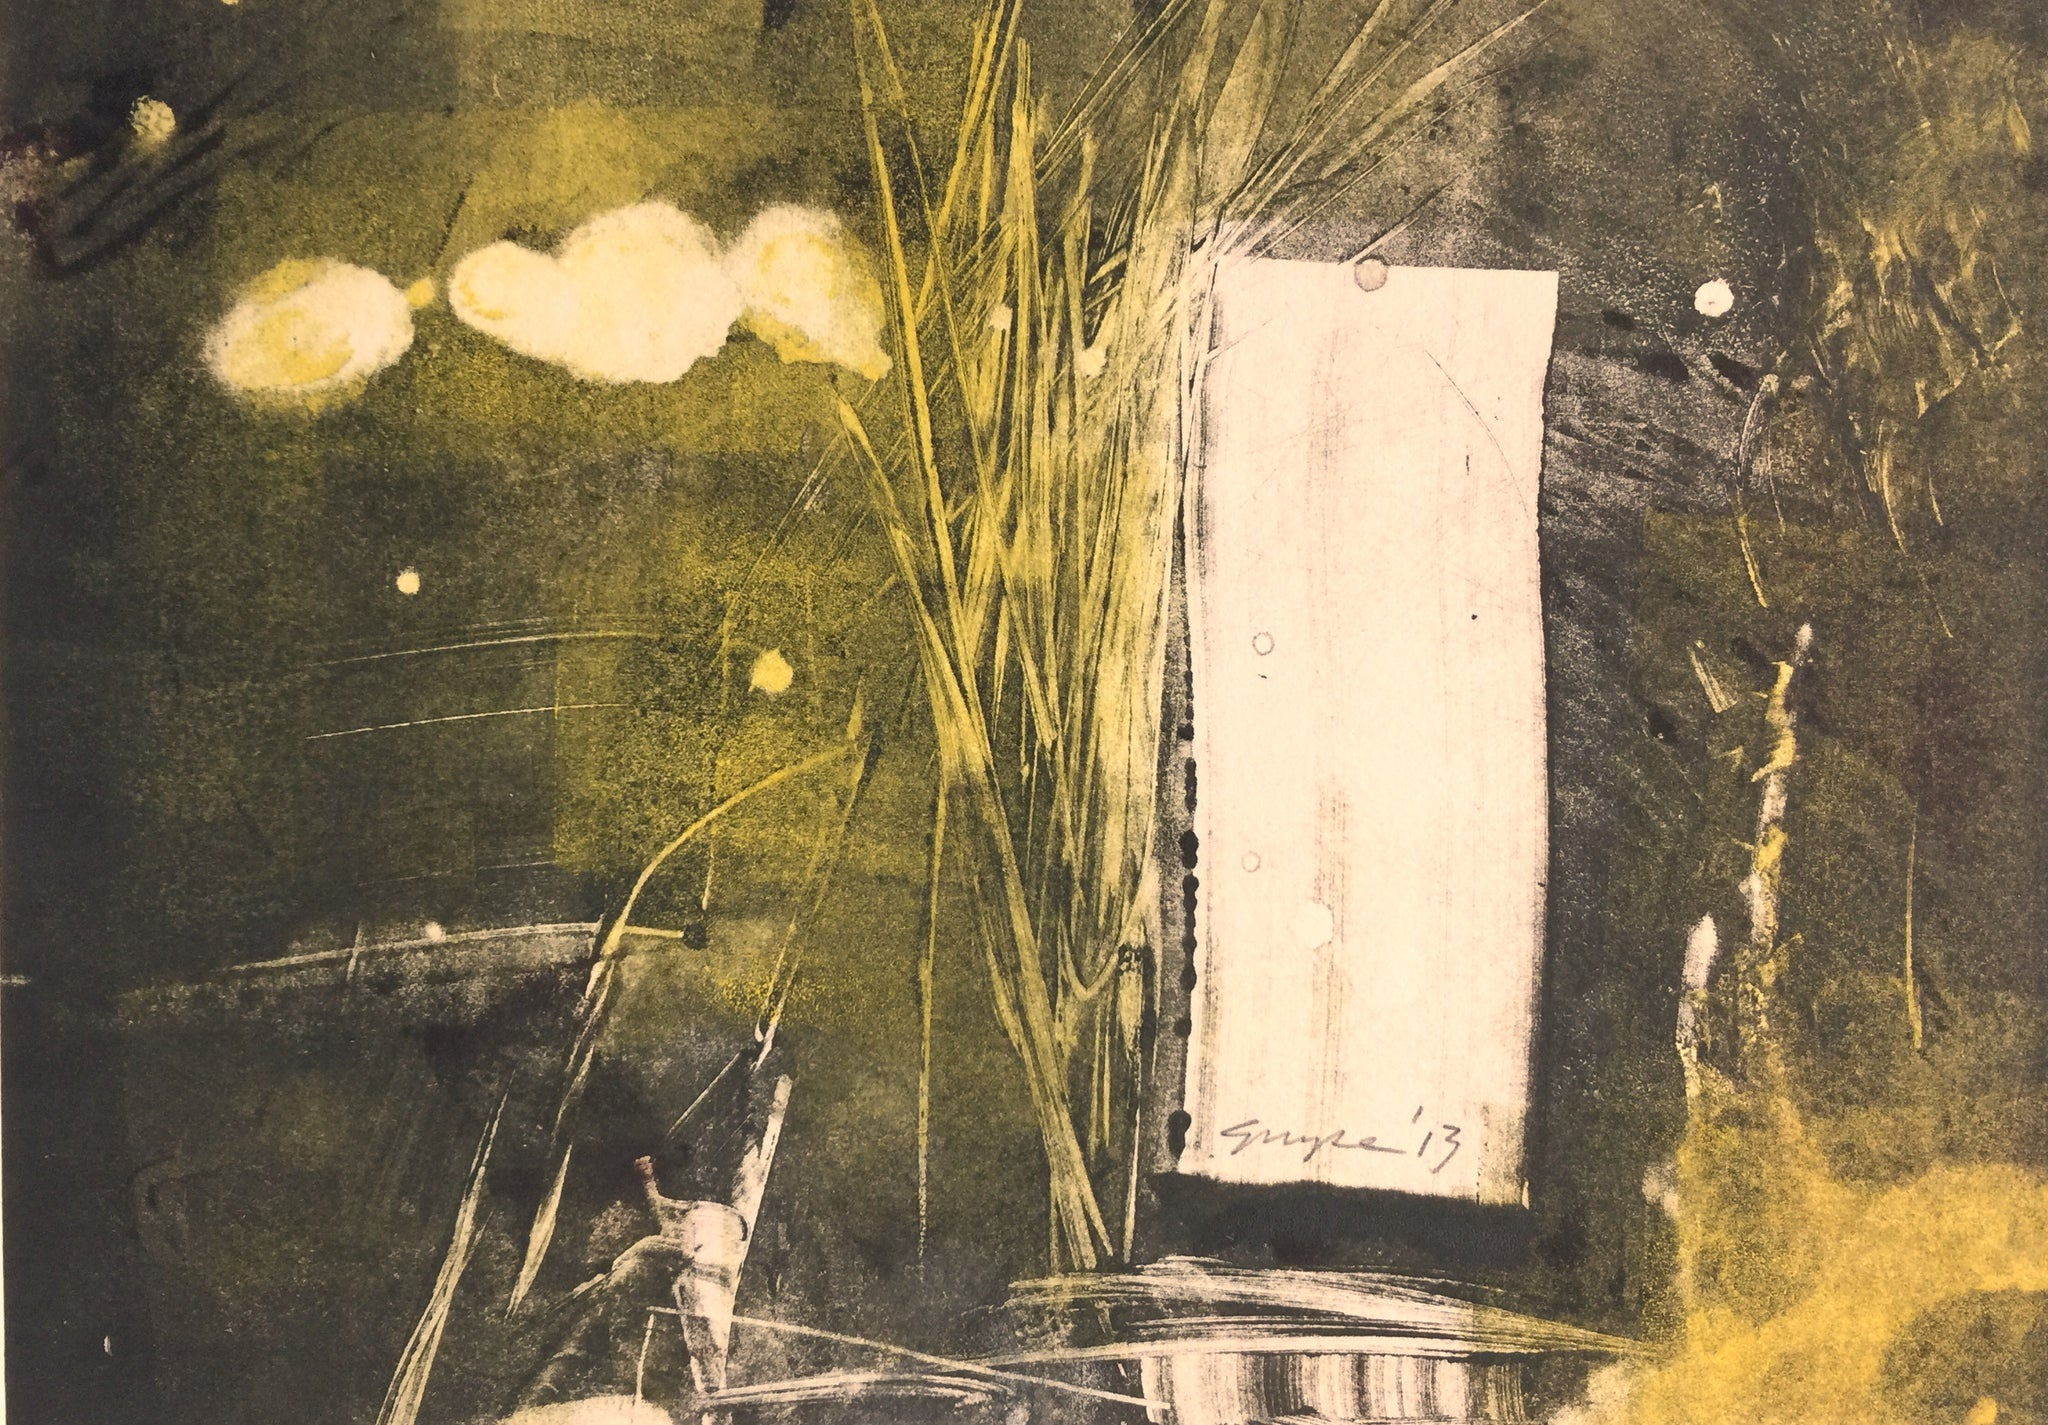 Monoprint by Debi Grupe